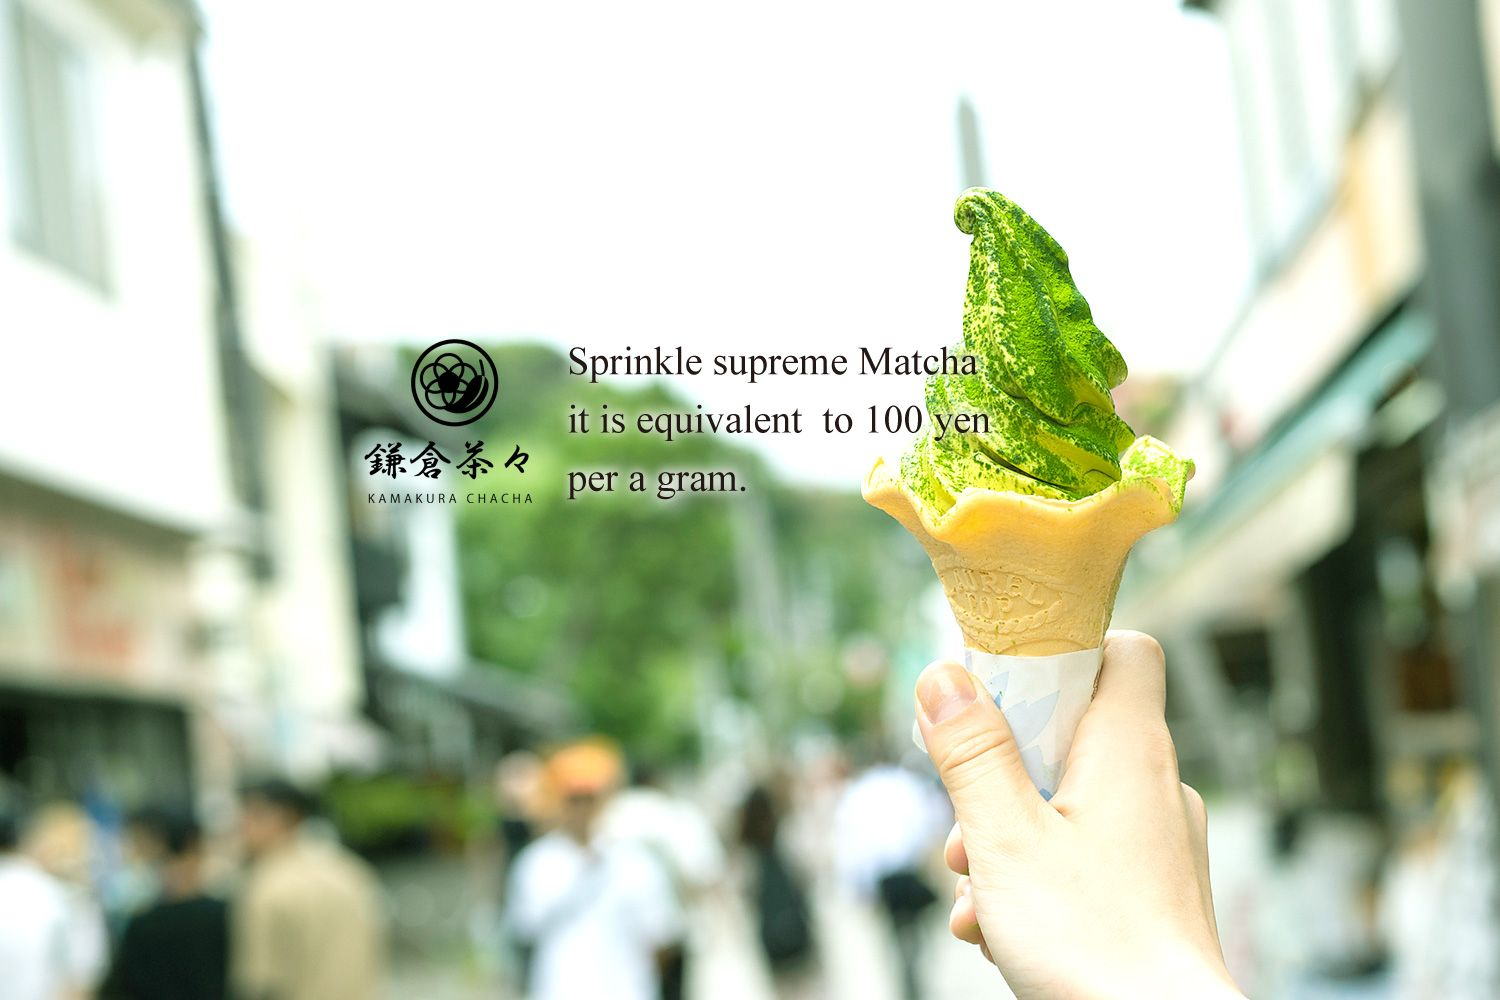 Sprinkle supreme Matcha it is equivalent  to 100 yen per a gram.